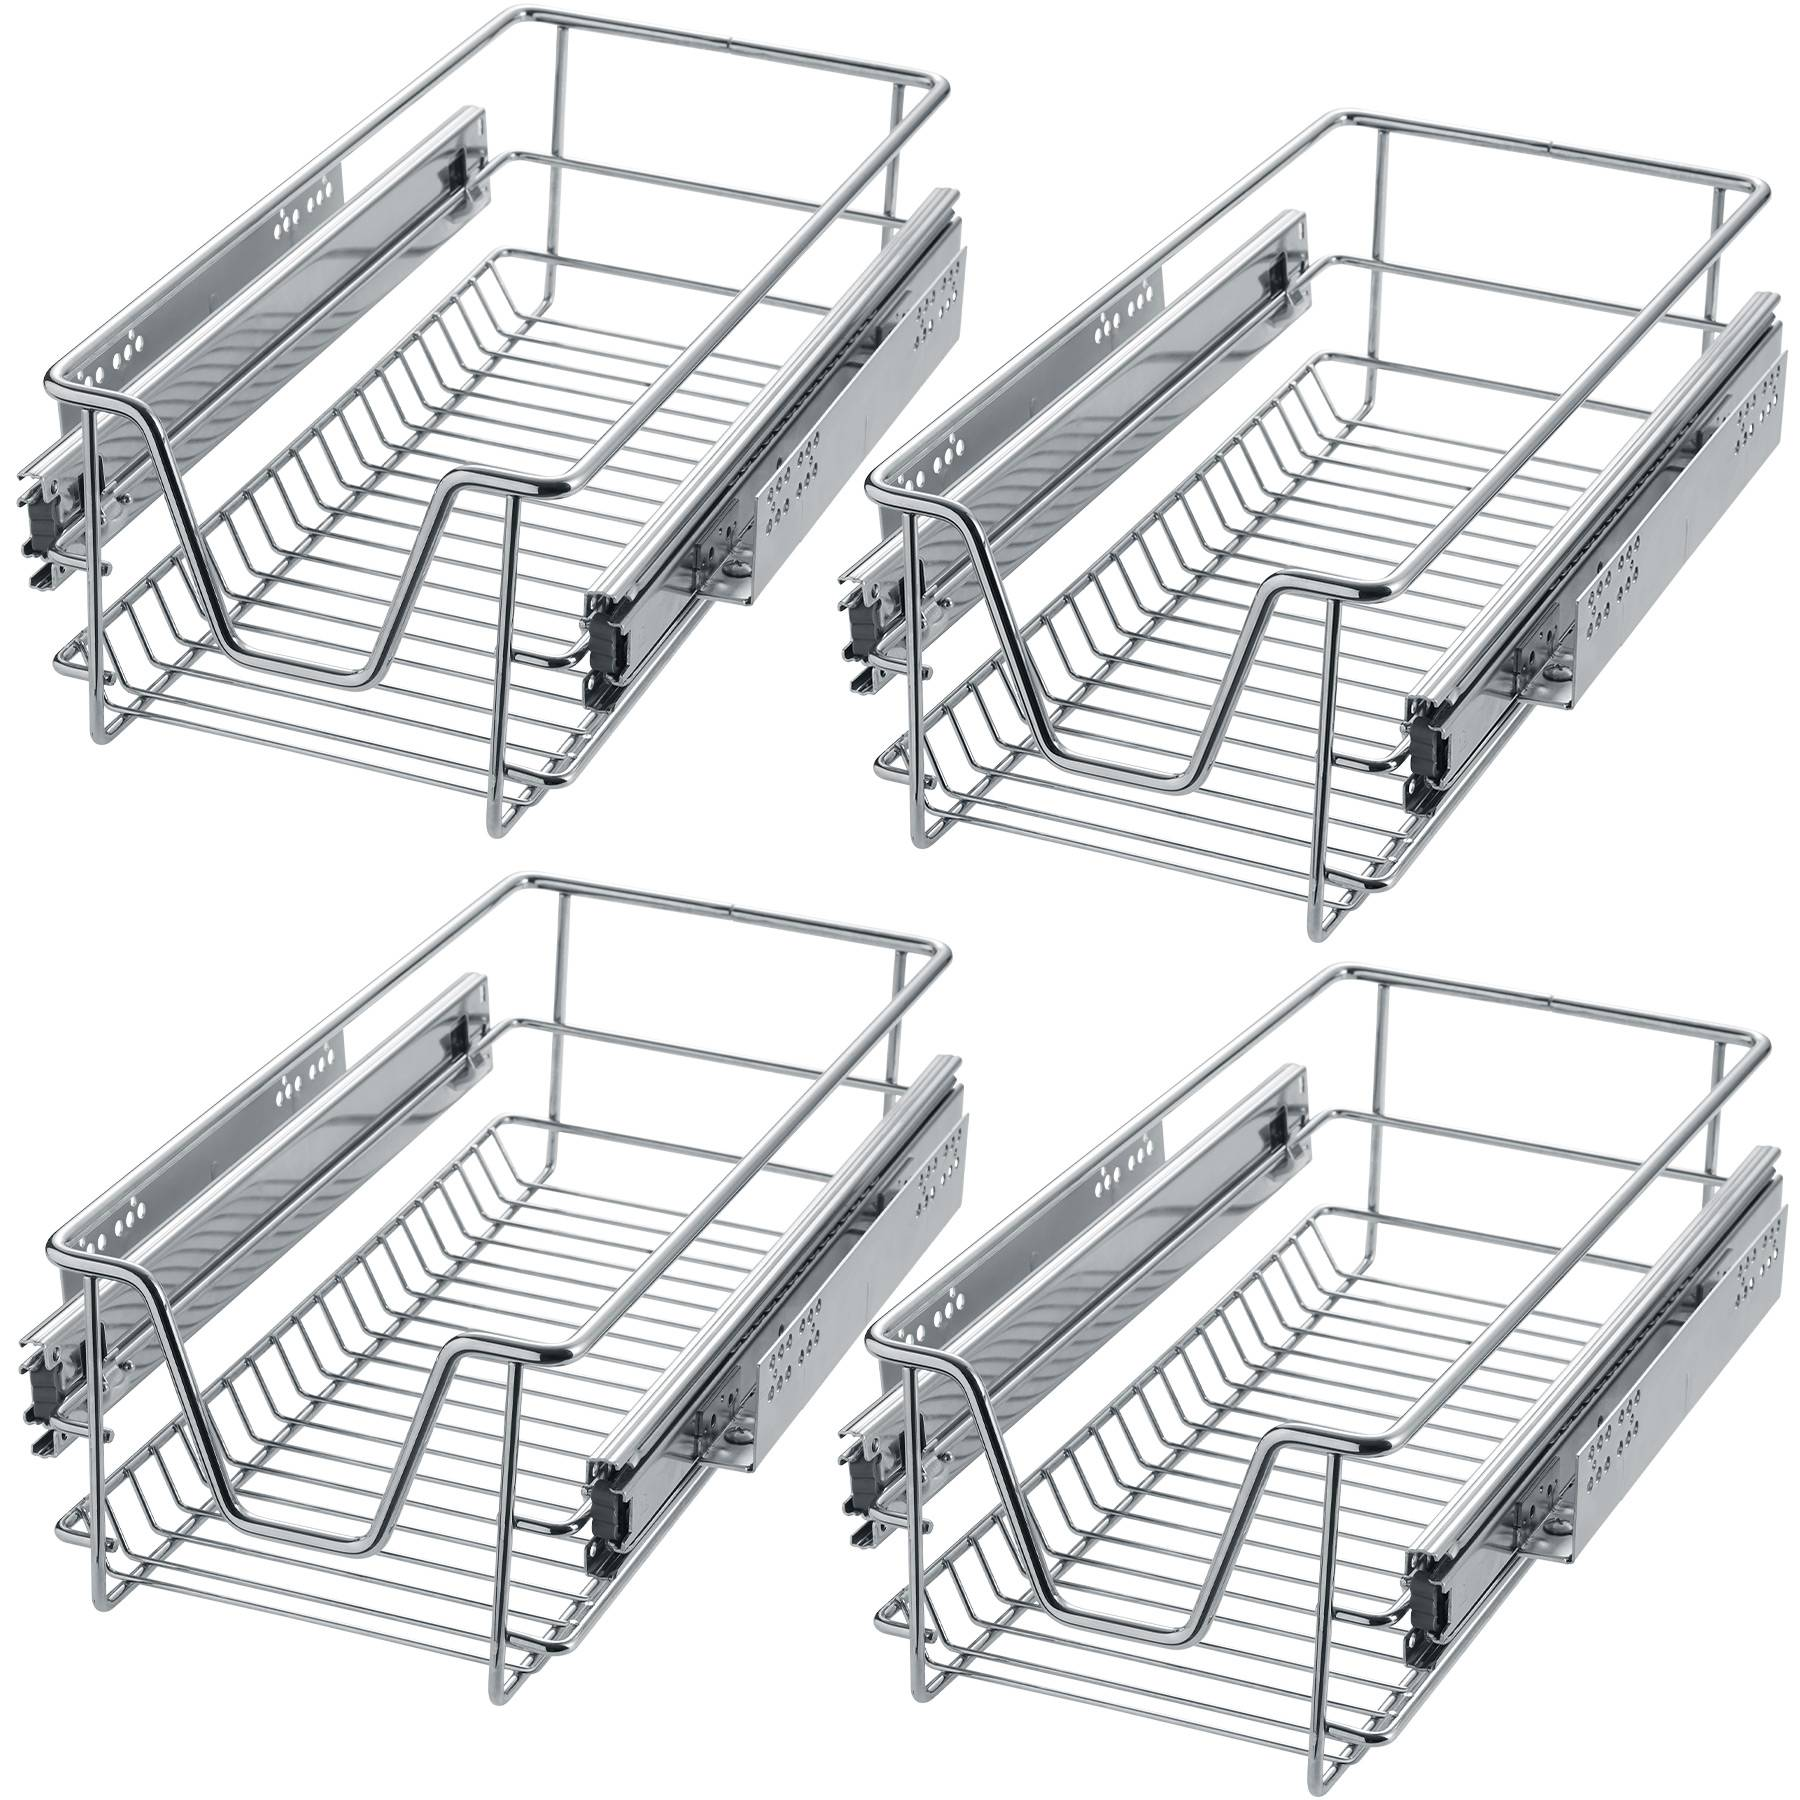 tectake 4 Sliding wire baskets with drawer slides - 27 cm